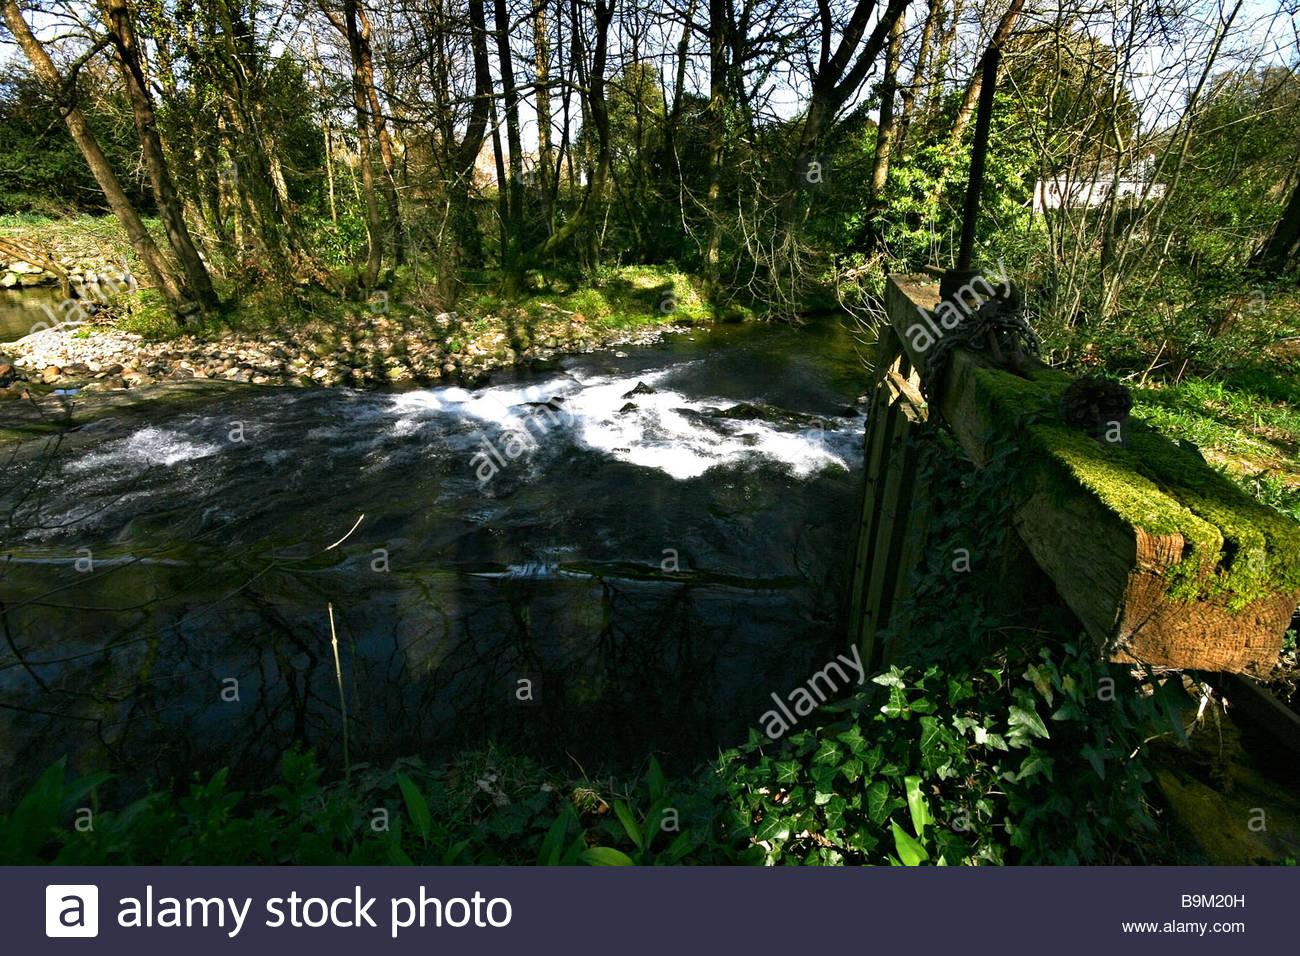 This little weir is on the river Erme in the South Hams area of Devon near an area called lower Keaton. - Stock Image